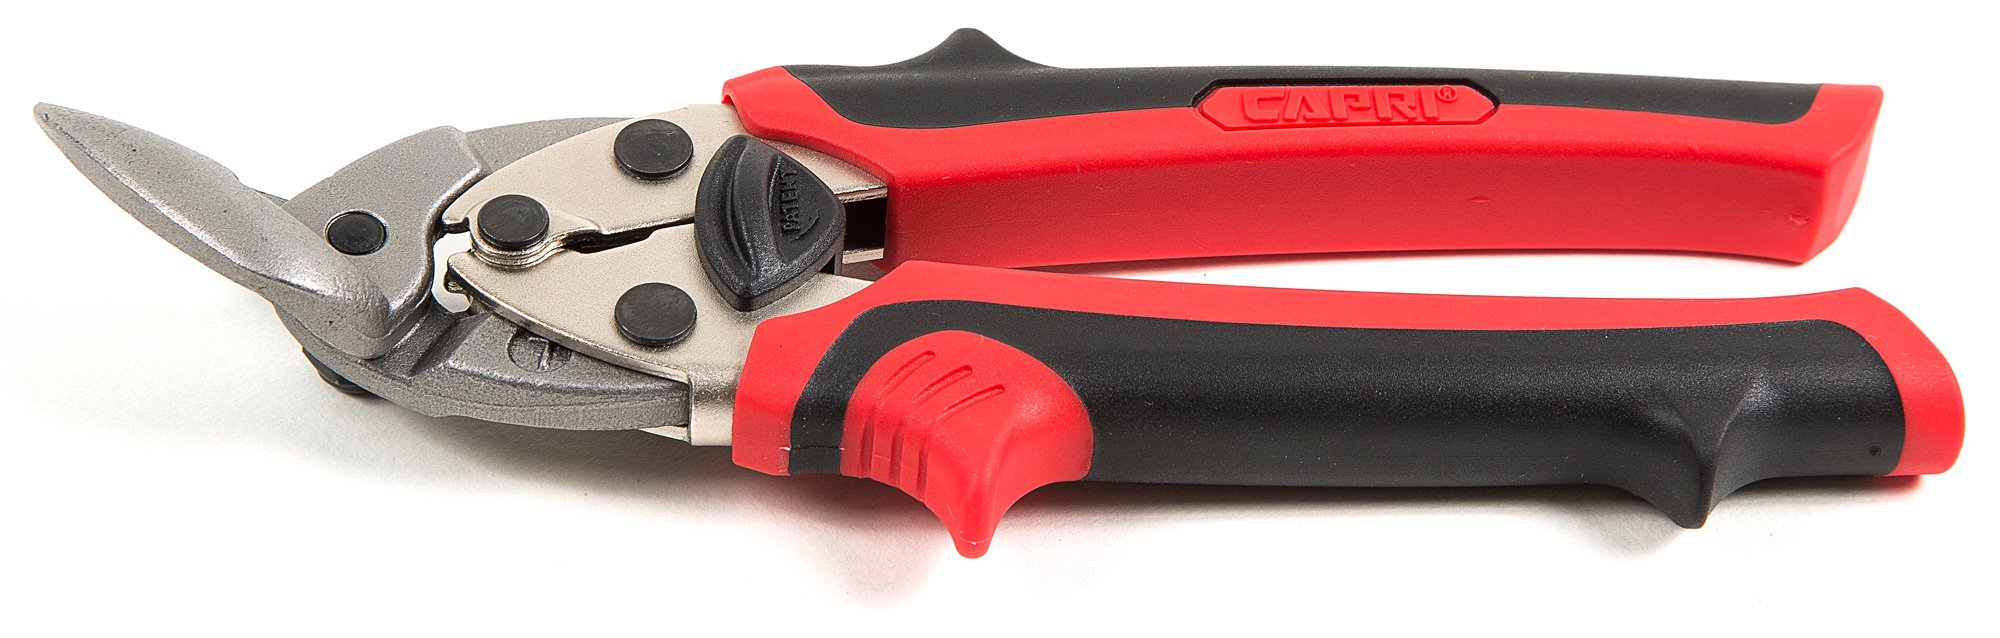 Capri Tools 40207 Compact Aviation Tin Snips, 7'', Left, Red/Black